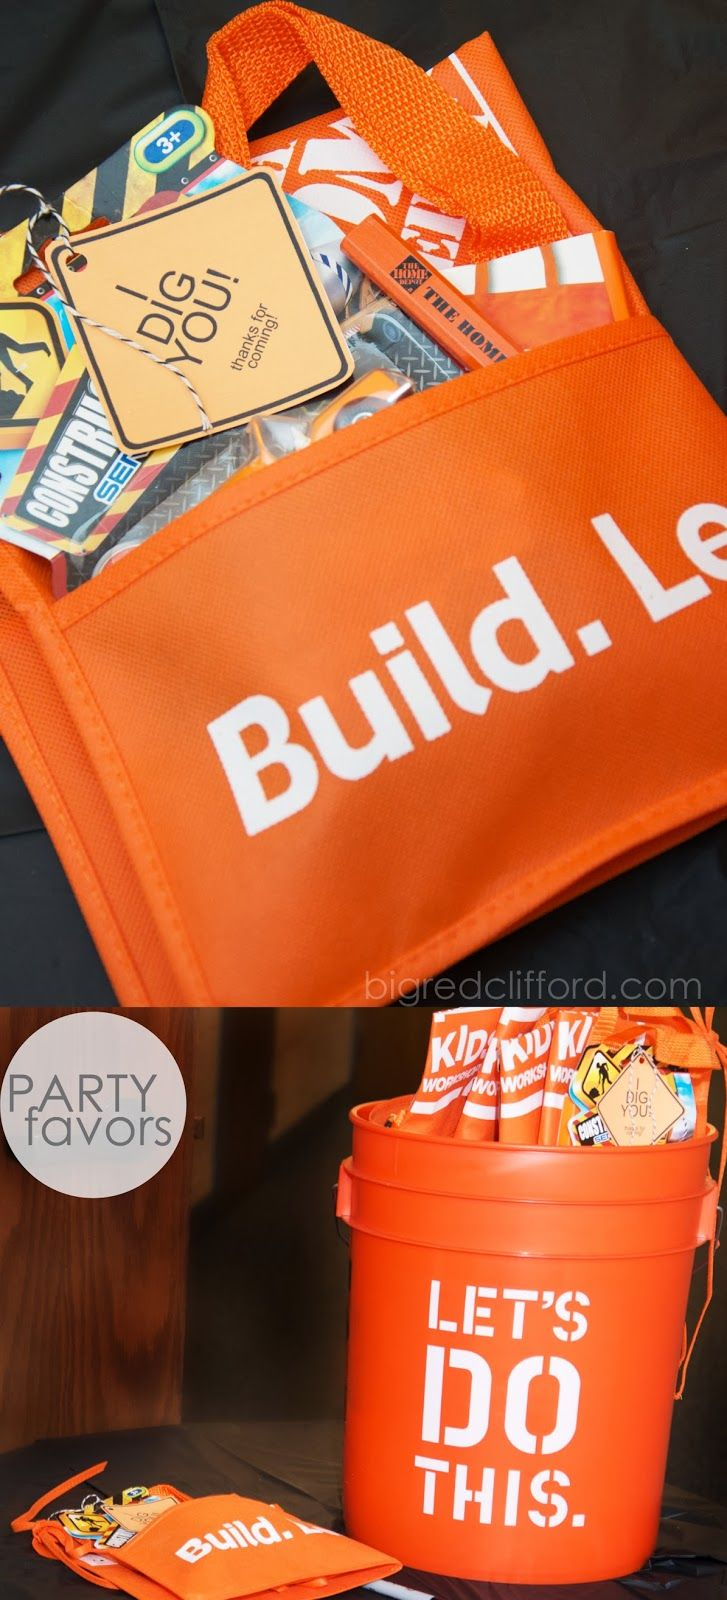 3 year old construction party favors for toddlers or big kids! | bigredclifford.com